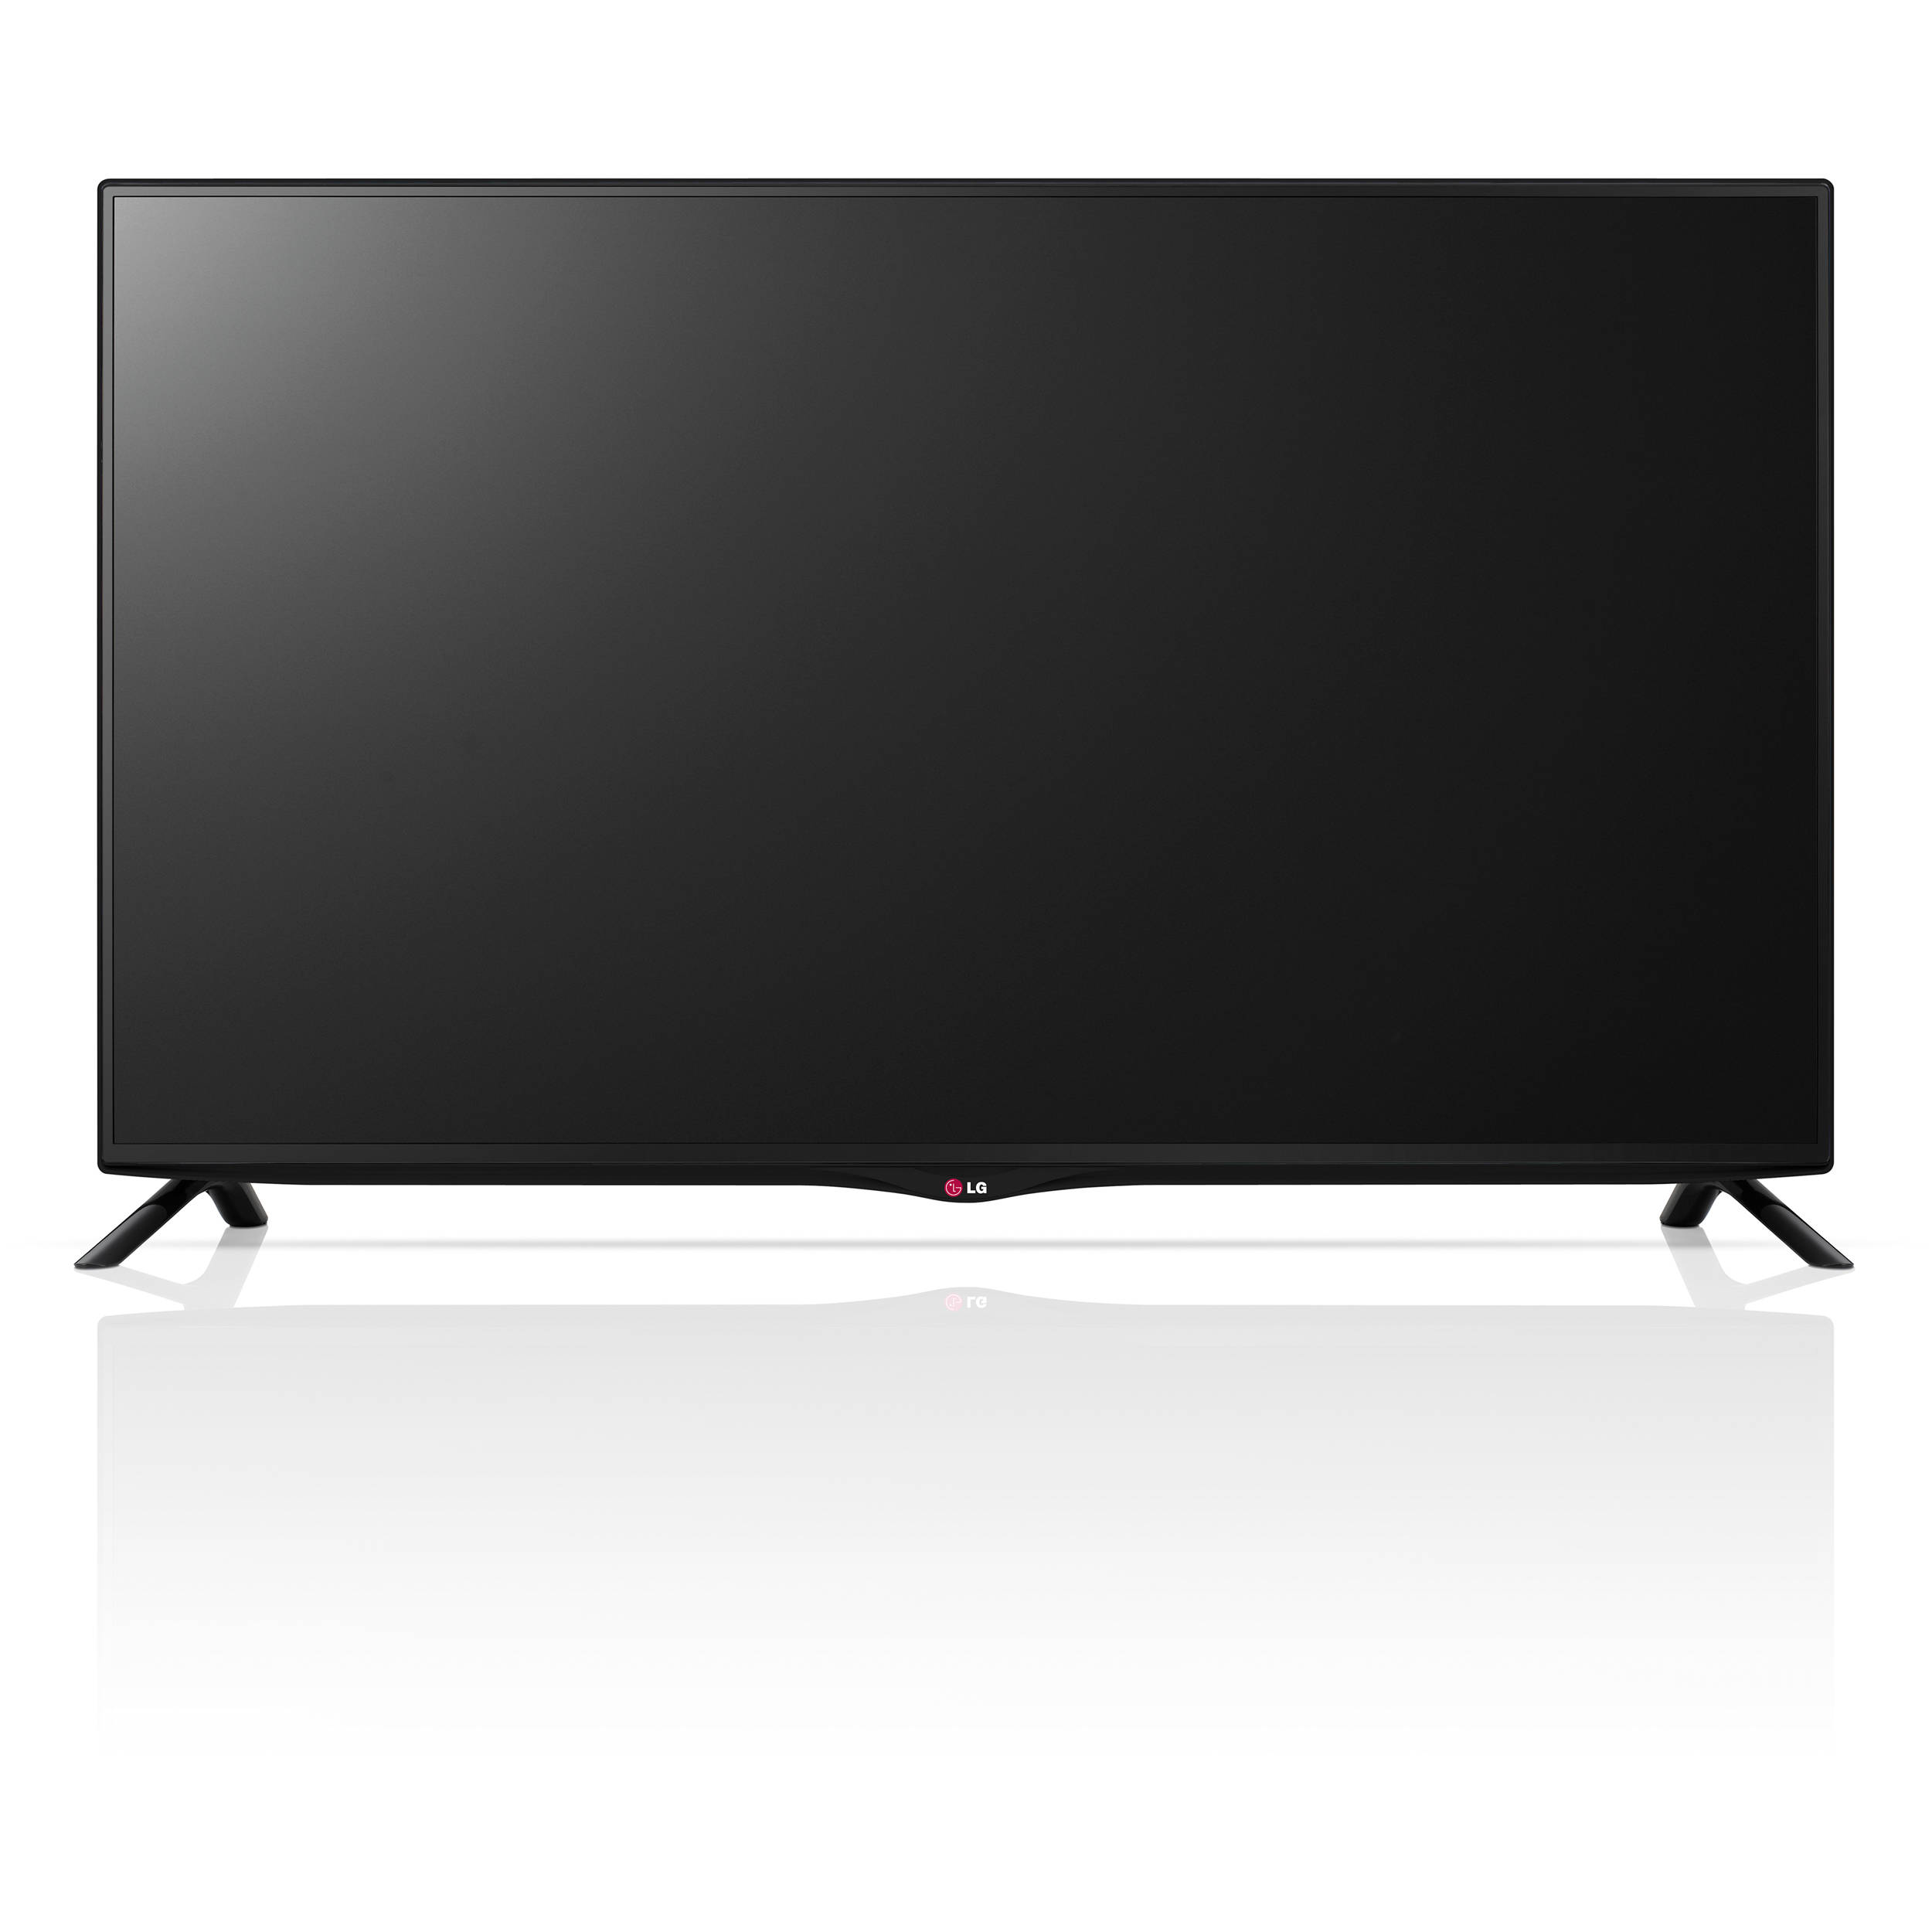 lg 40ub8000 40 class 4k smart led tv 40ub8000 b h photo. Black Bedroom Furniture Sets. Home Design Ideas